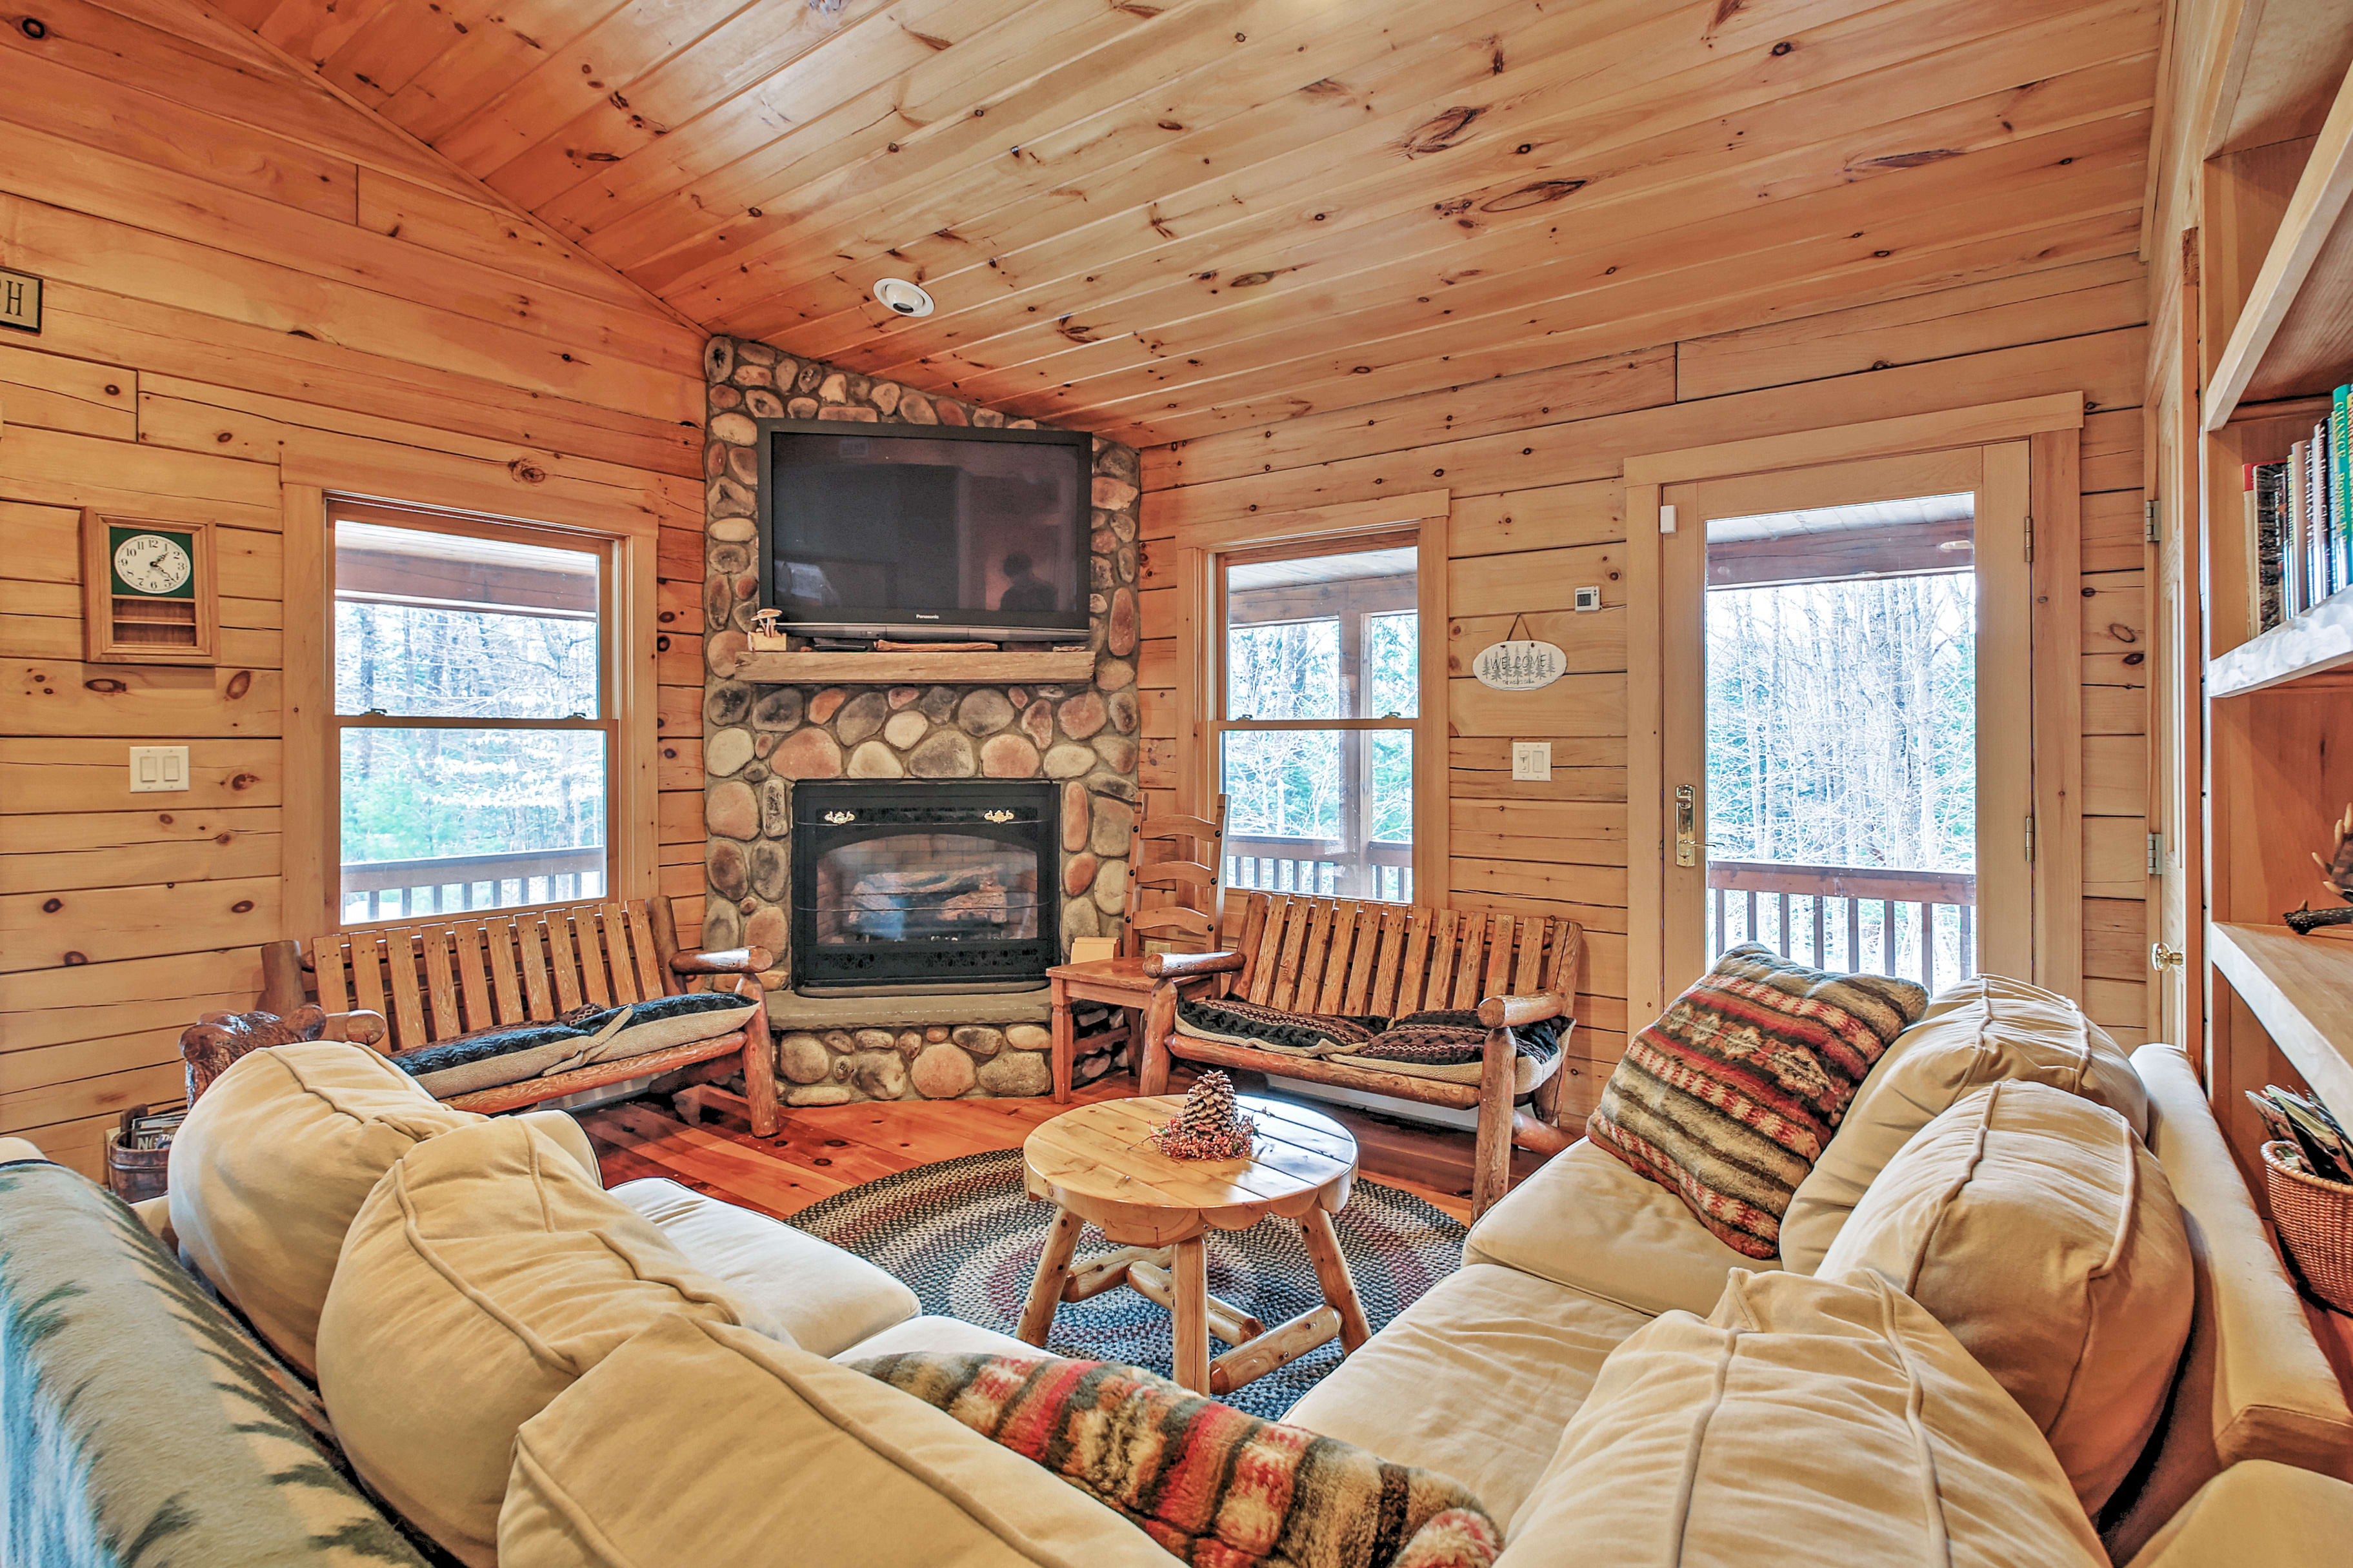 There's plenty of comfortable seating for everyone in this bright living room!